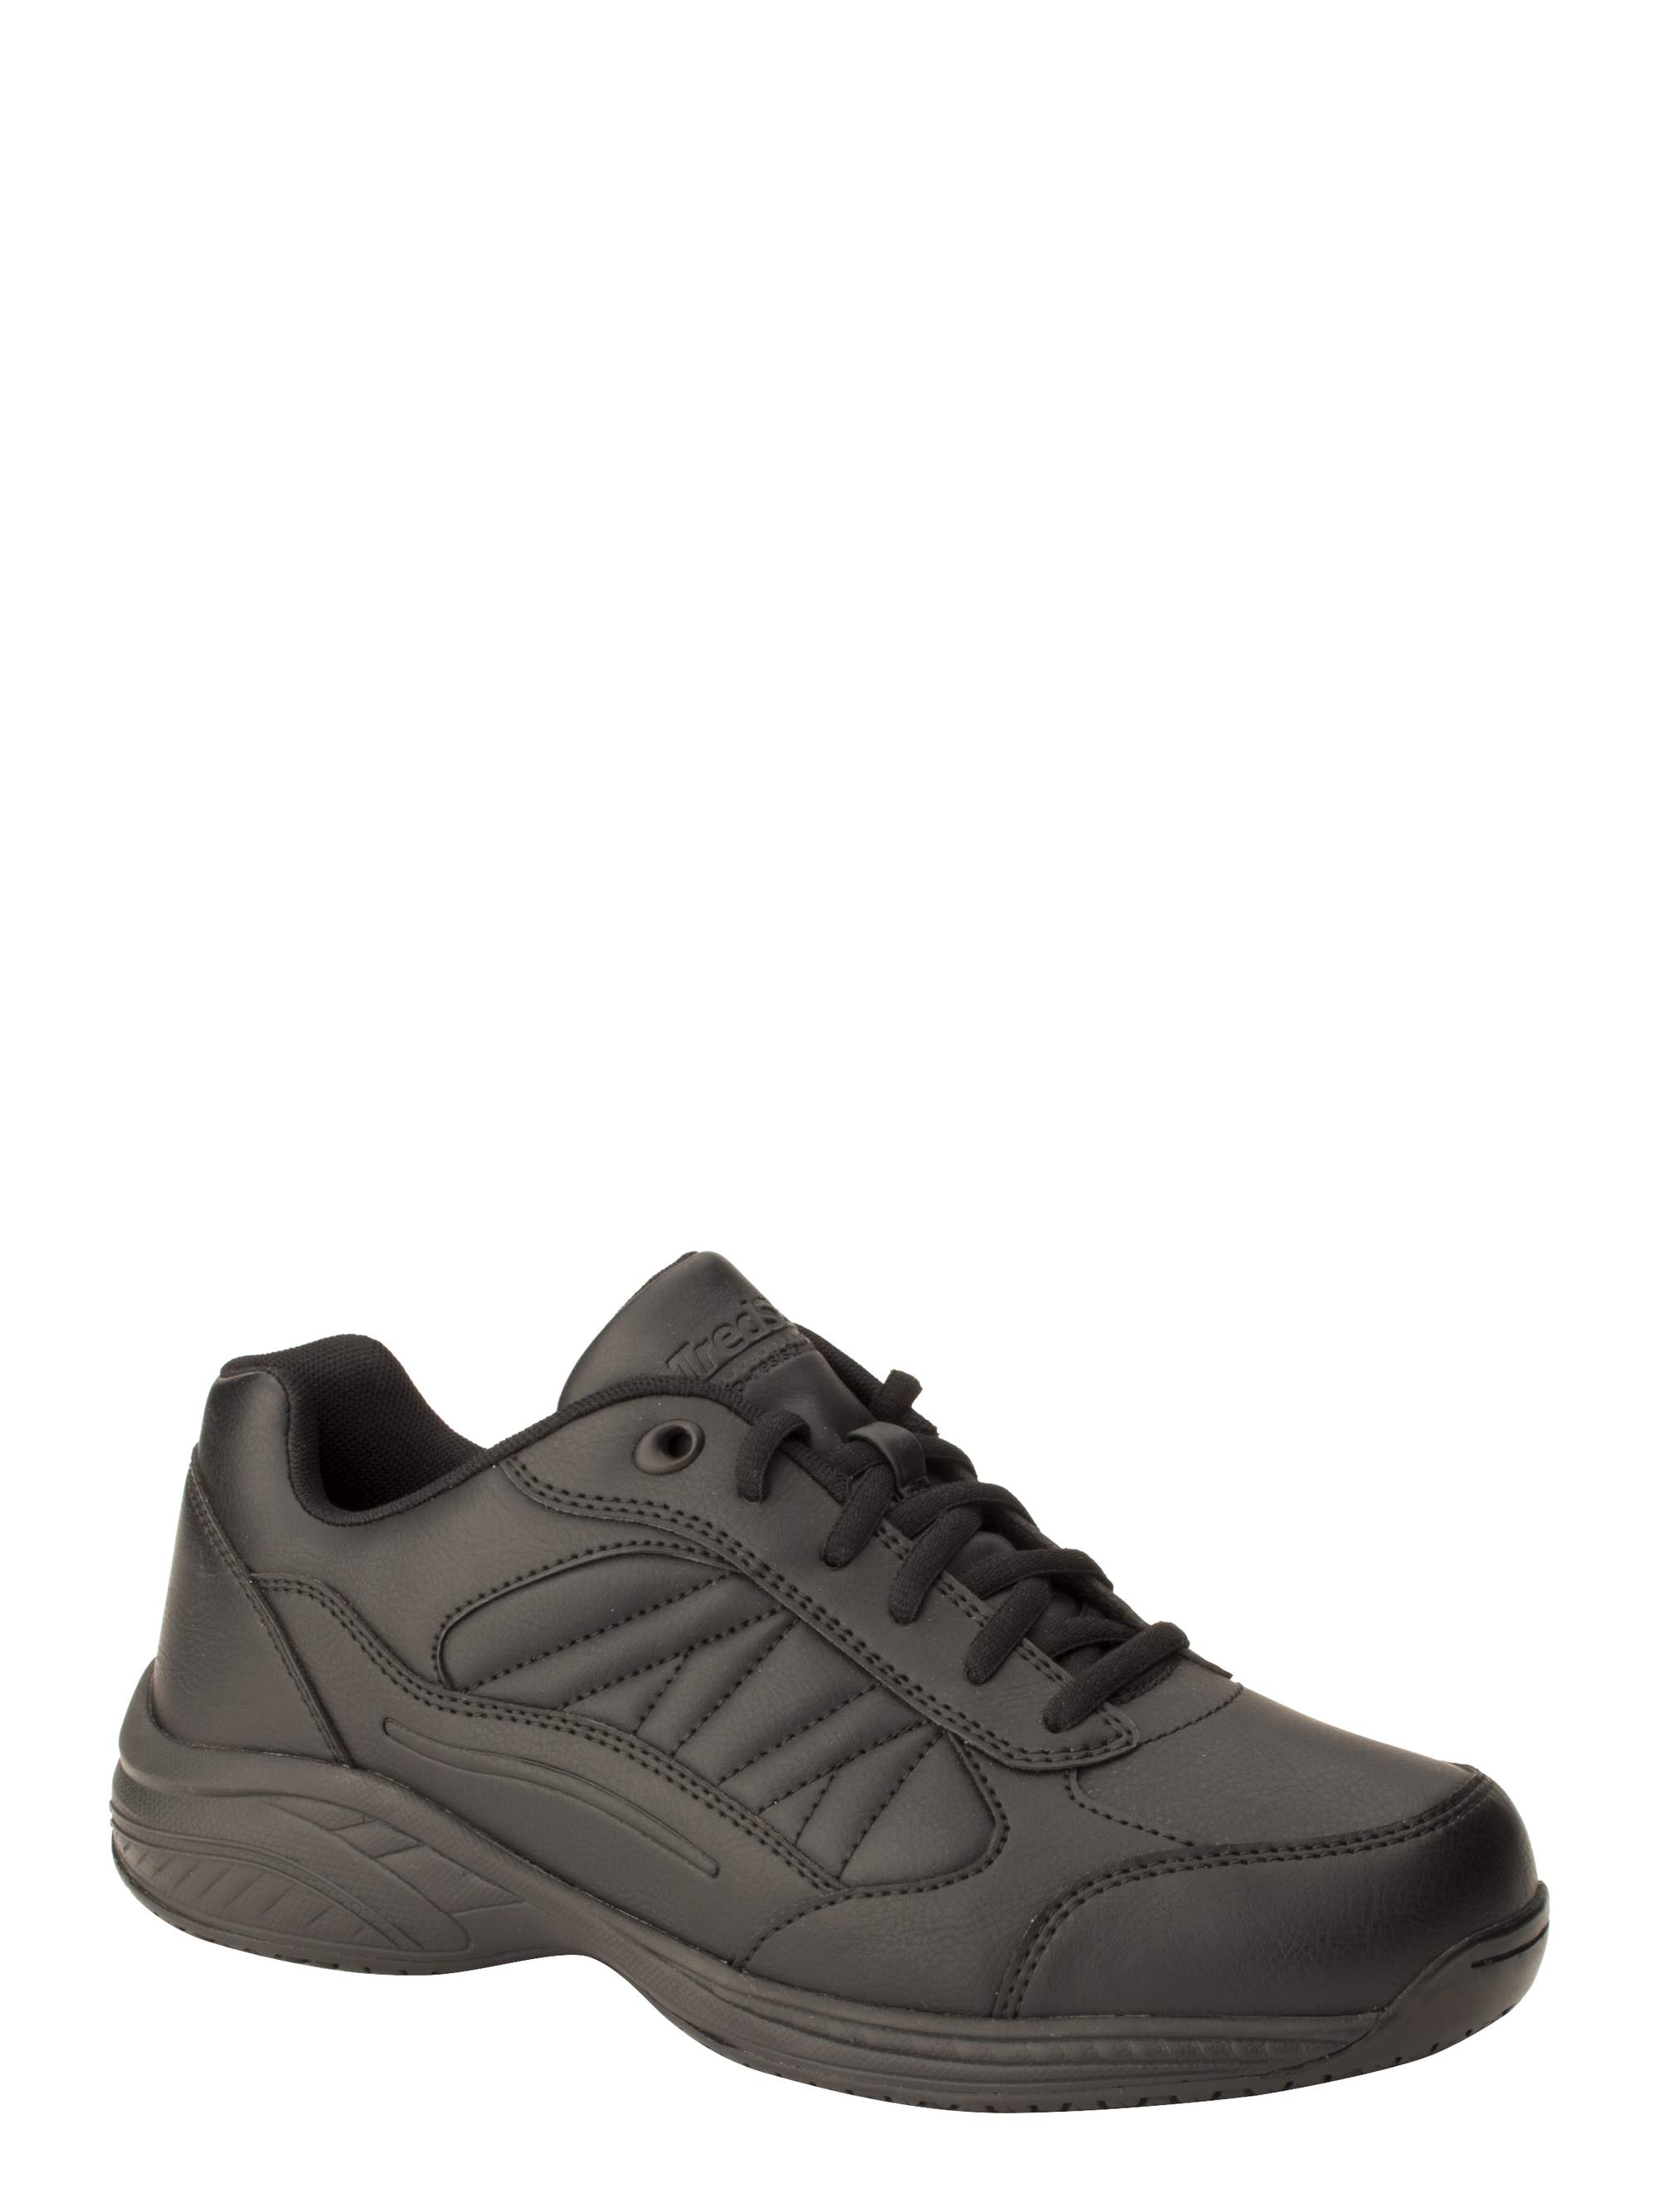 Tredsafe Men's Mario Slip-Resistant Athletic Shoe, Wide Width by GERNERIC